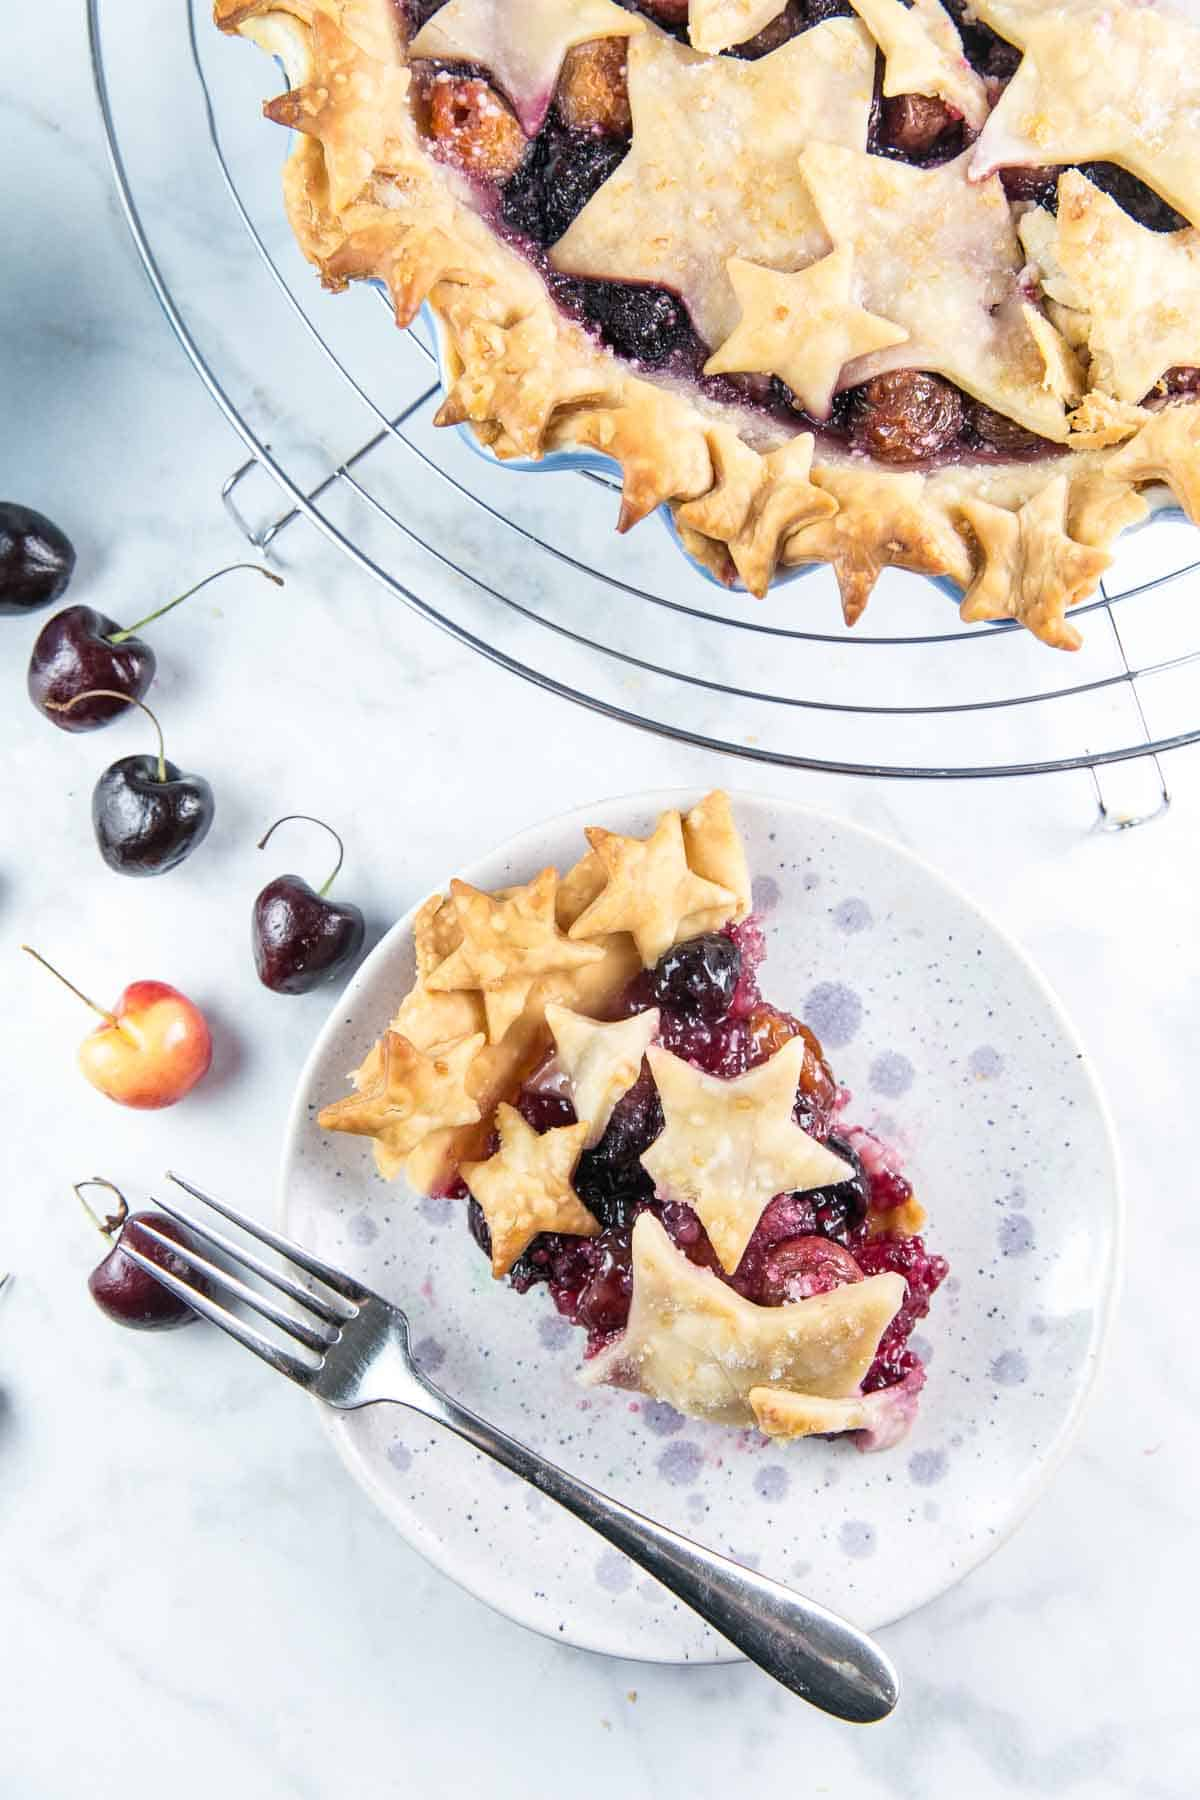 Cherry Almond Pie: Made with fresh cherries, this homemade star-spangled cherry pie is the perfect summer fruit pie. #pie #cherrypie #piecrust #cherries